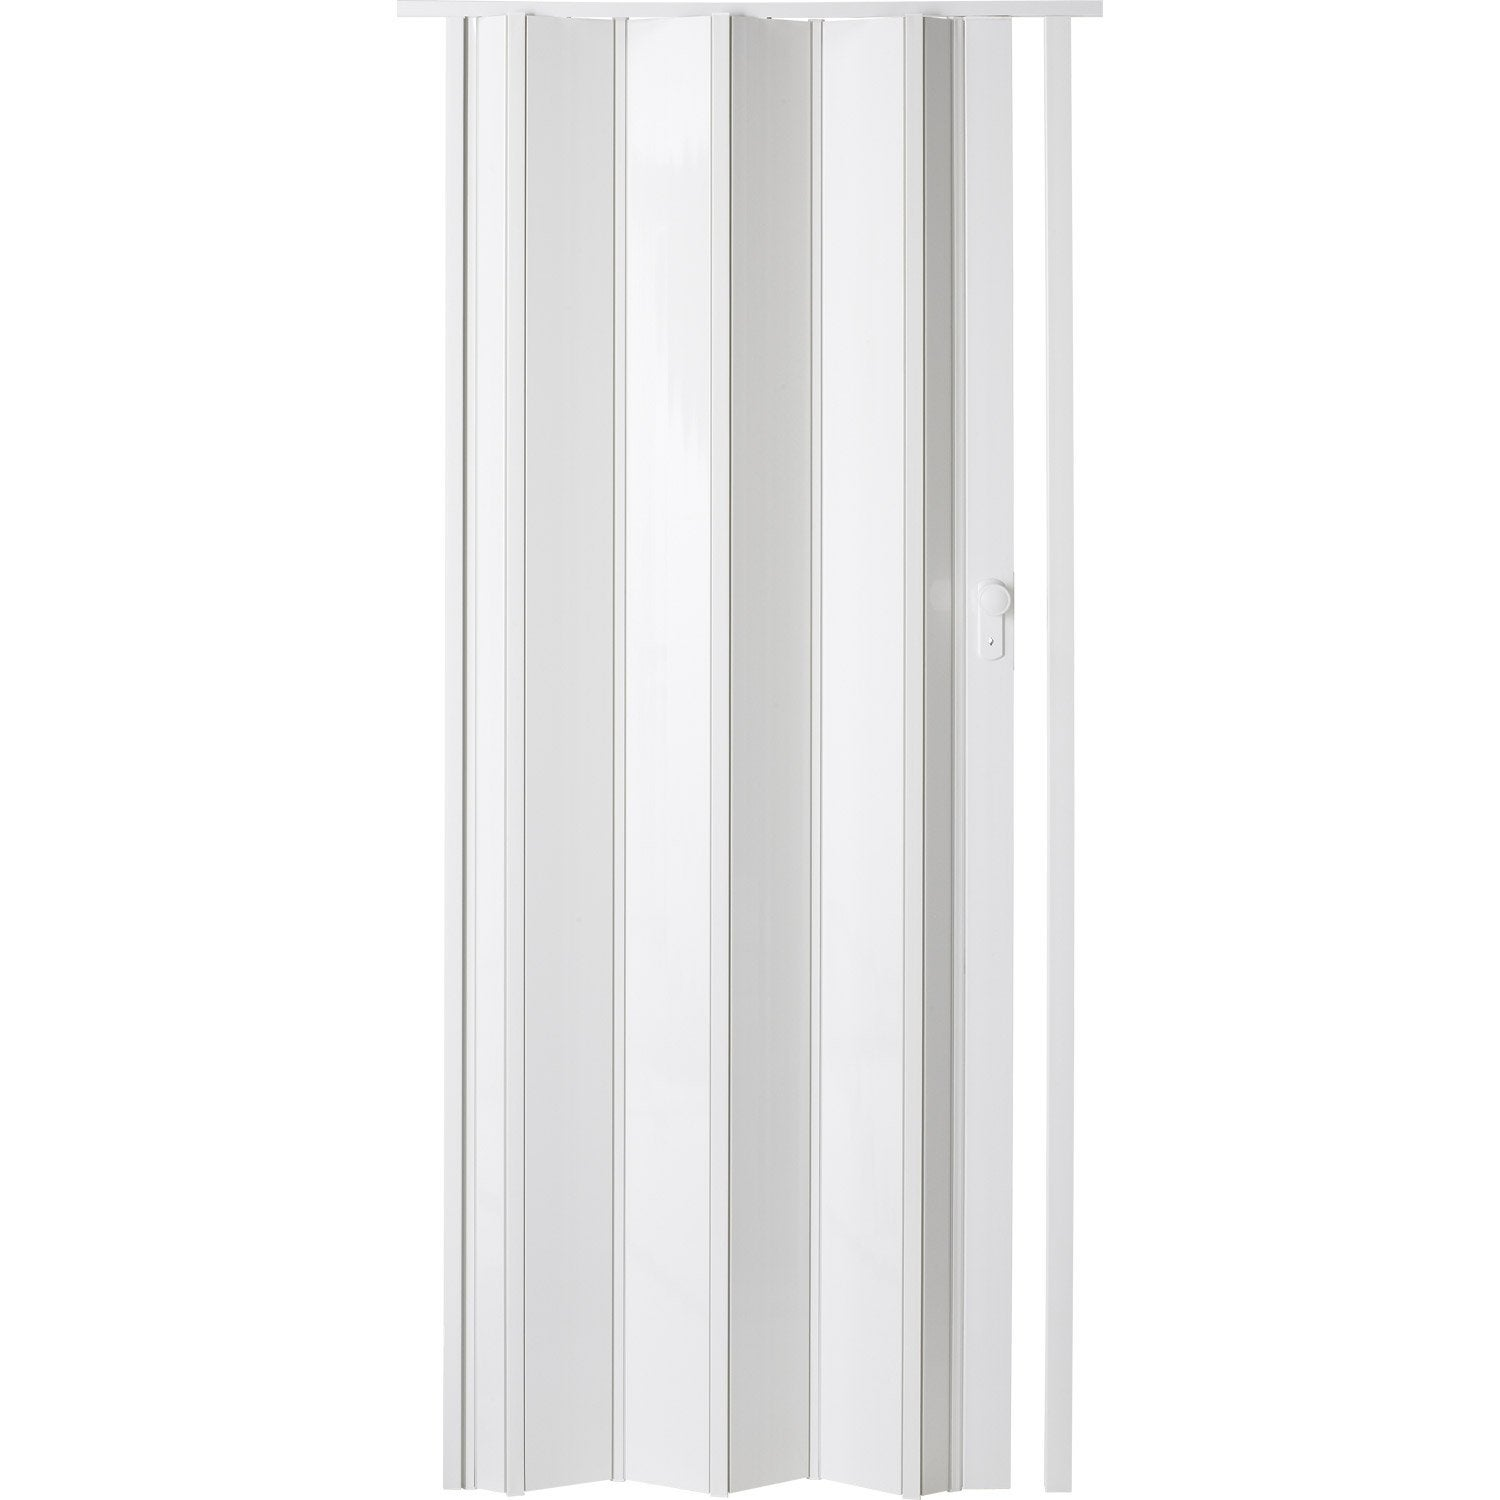 Bloc porte coulissante leroy merlin maison design for Porte 63cm leroy merlin